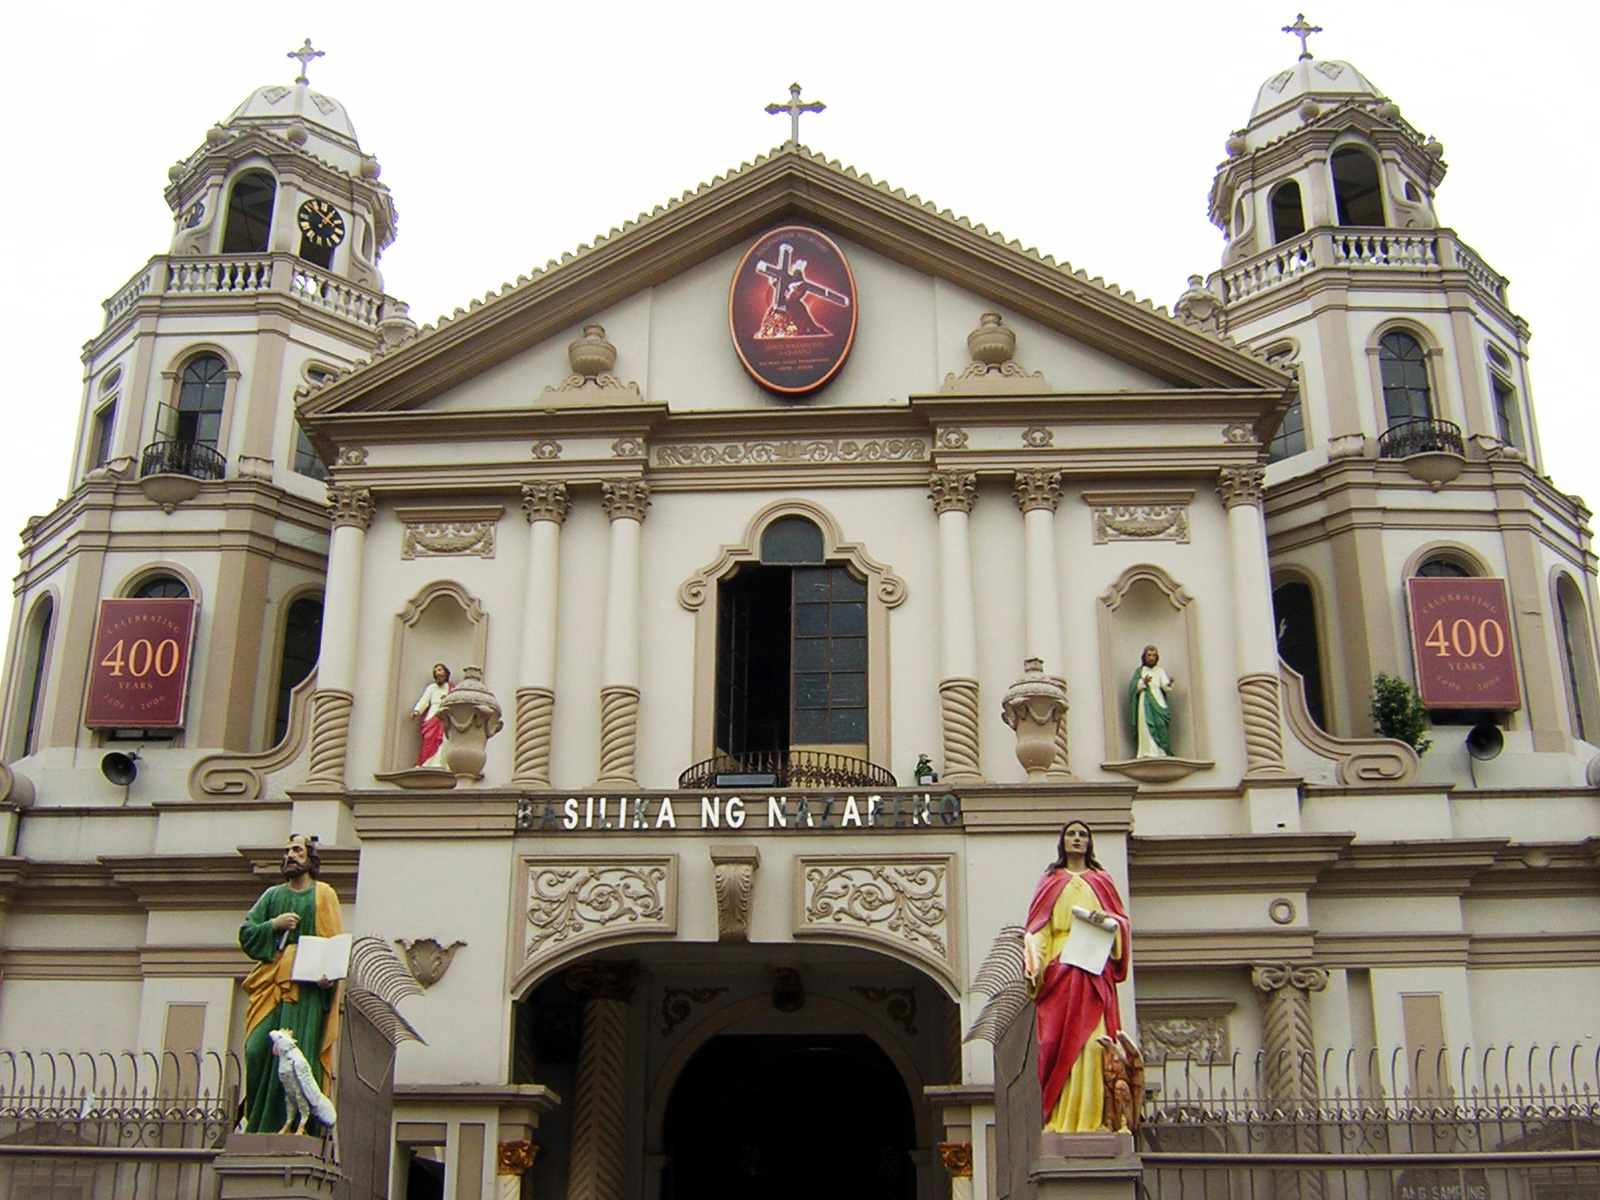 Catholic church in the philippines wikipedia quiapo church the basilica minore of the nazarene is home of the statue of the black nazarene which is the focus of widespread popular devotion in the biocorpaavc Gallery